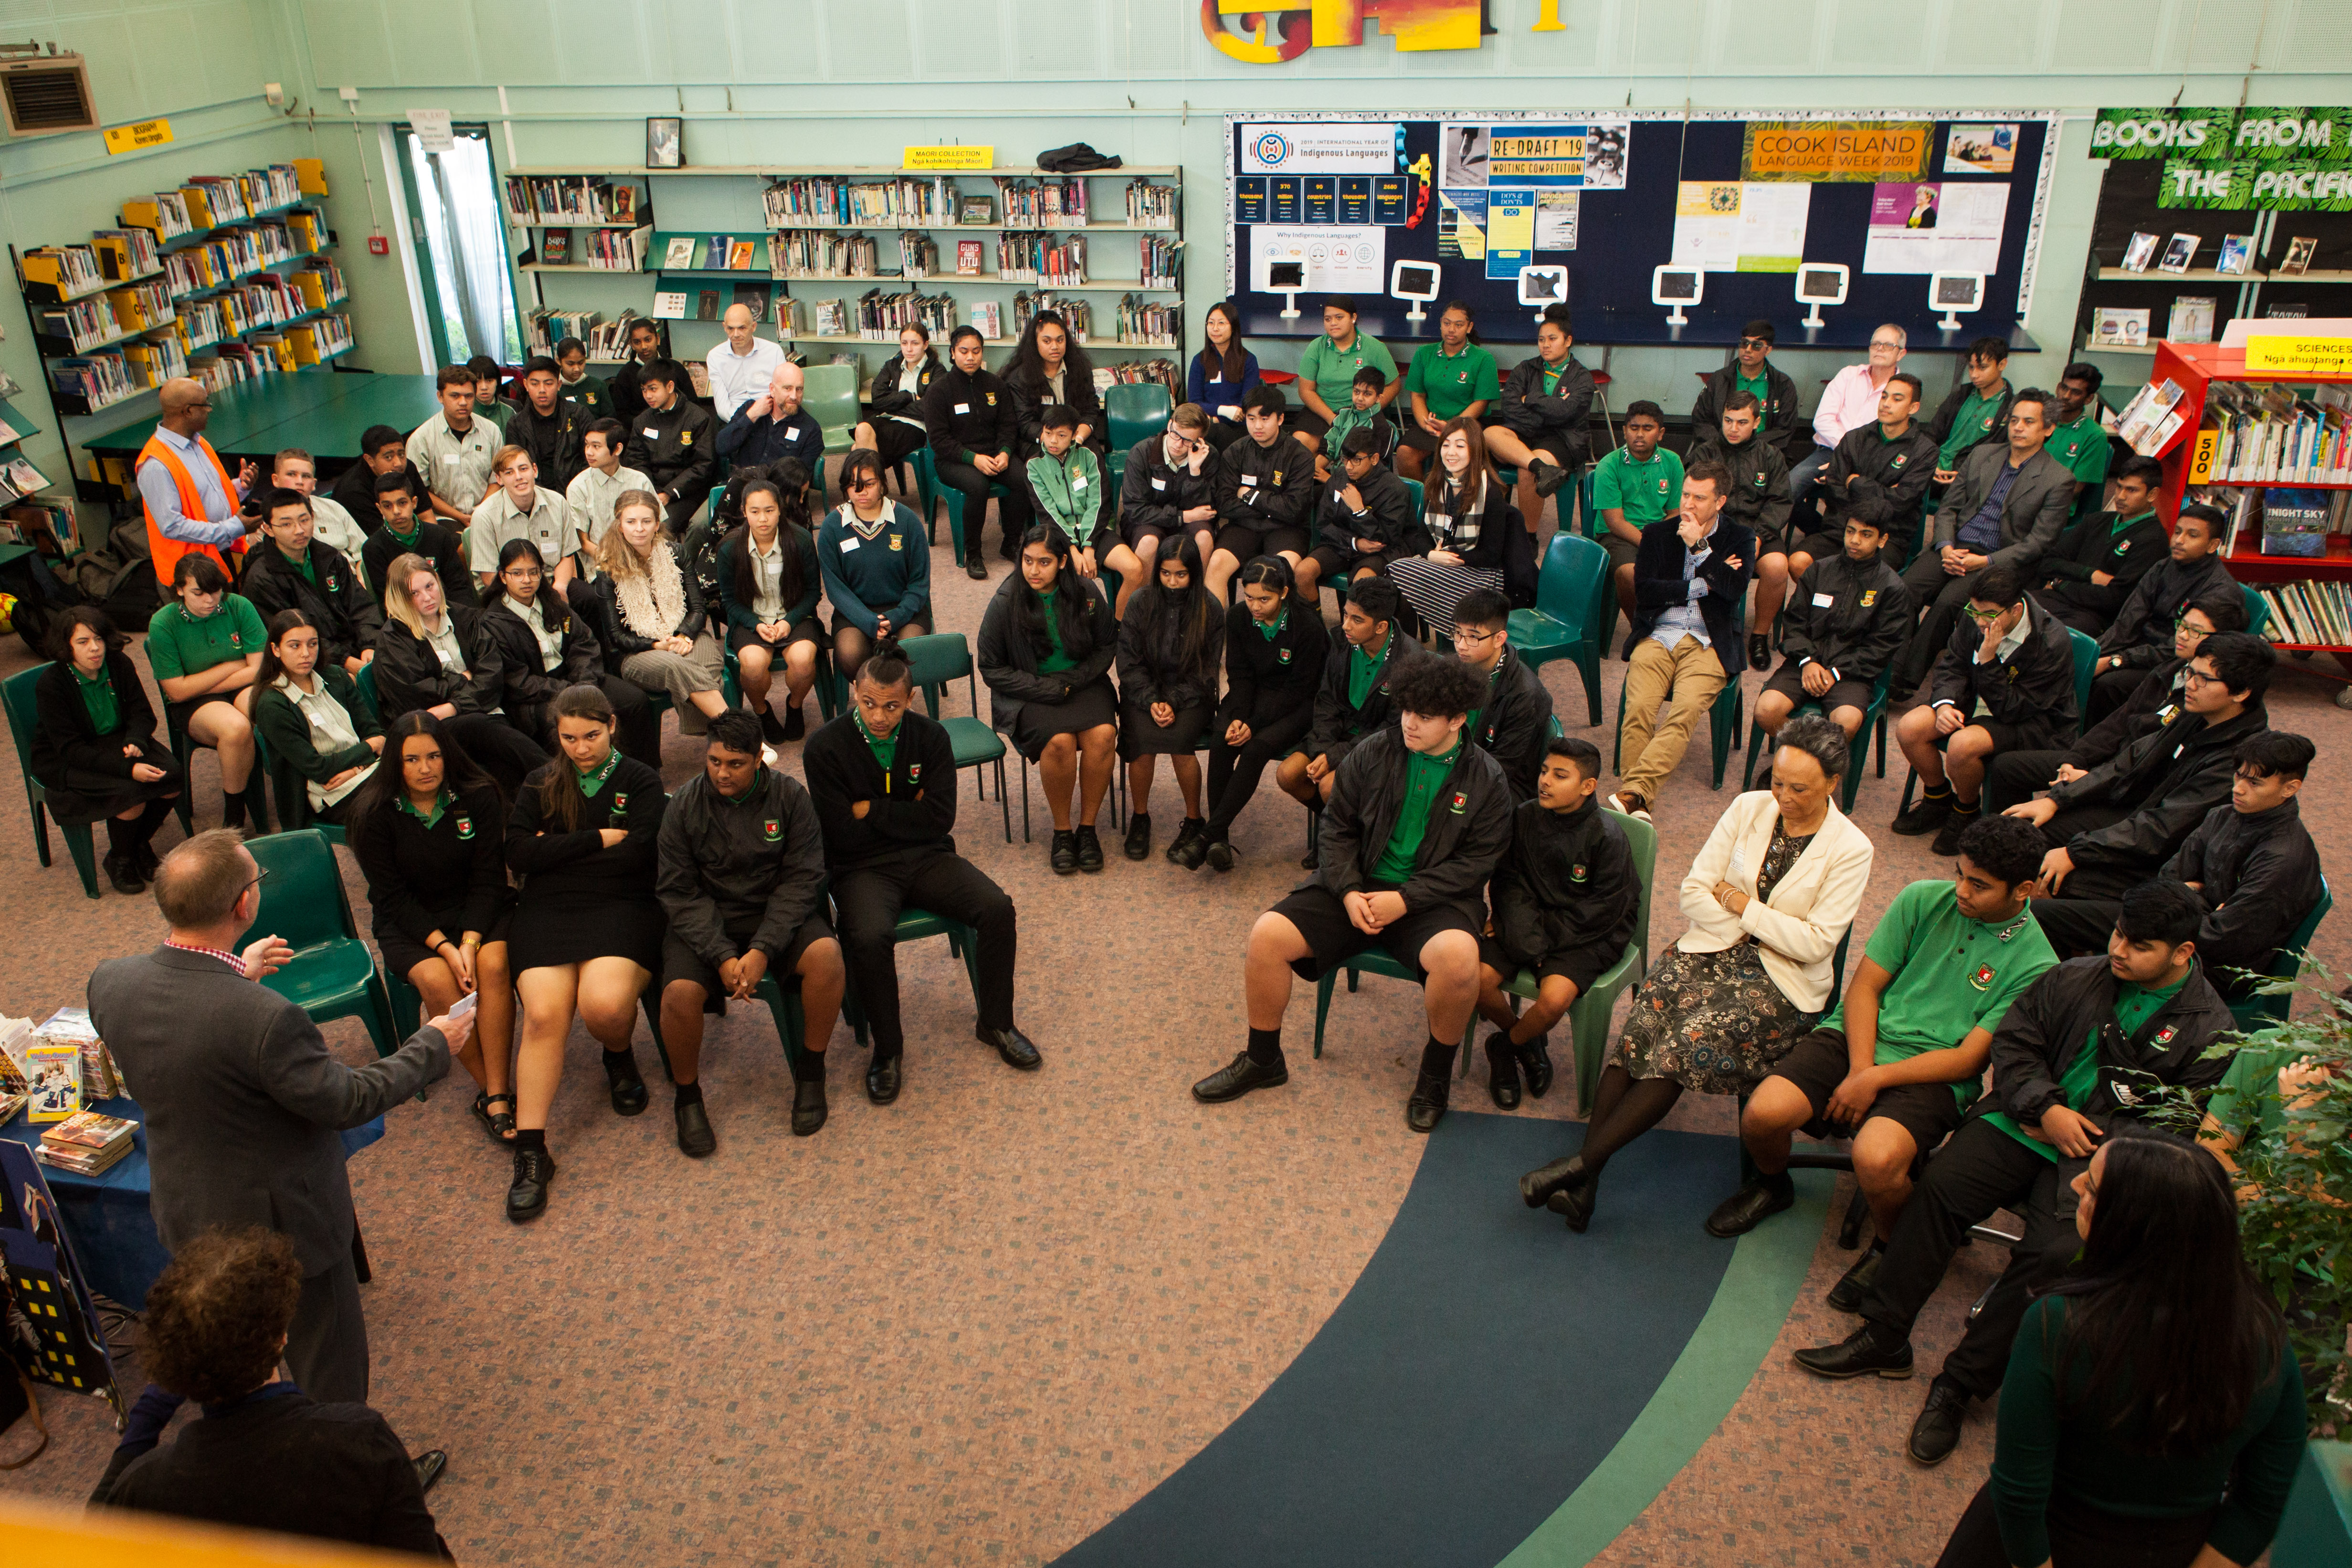 Manurewa High School in South Auckland